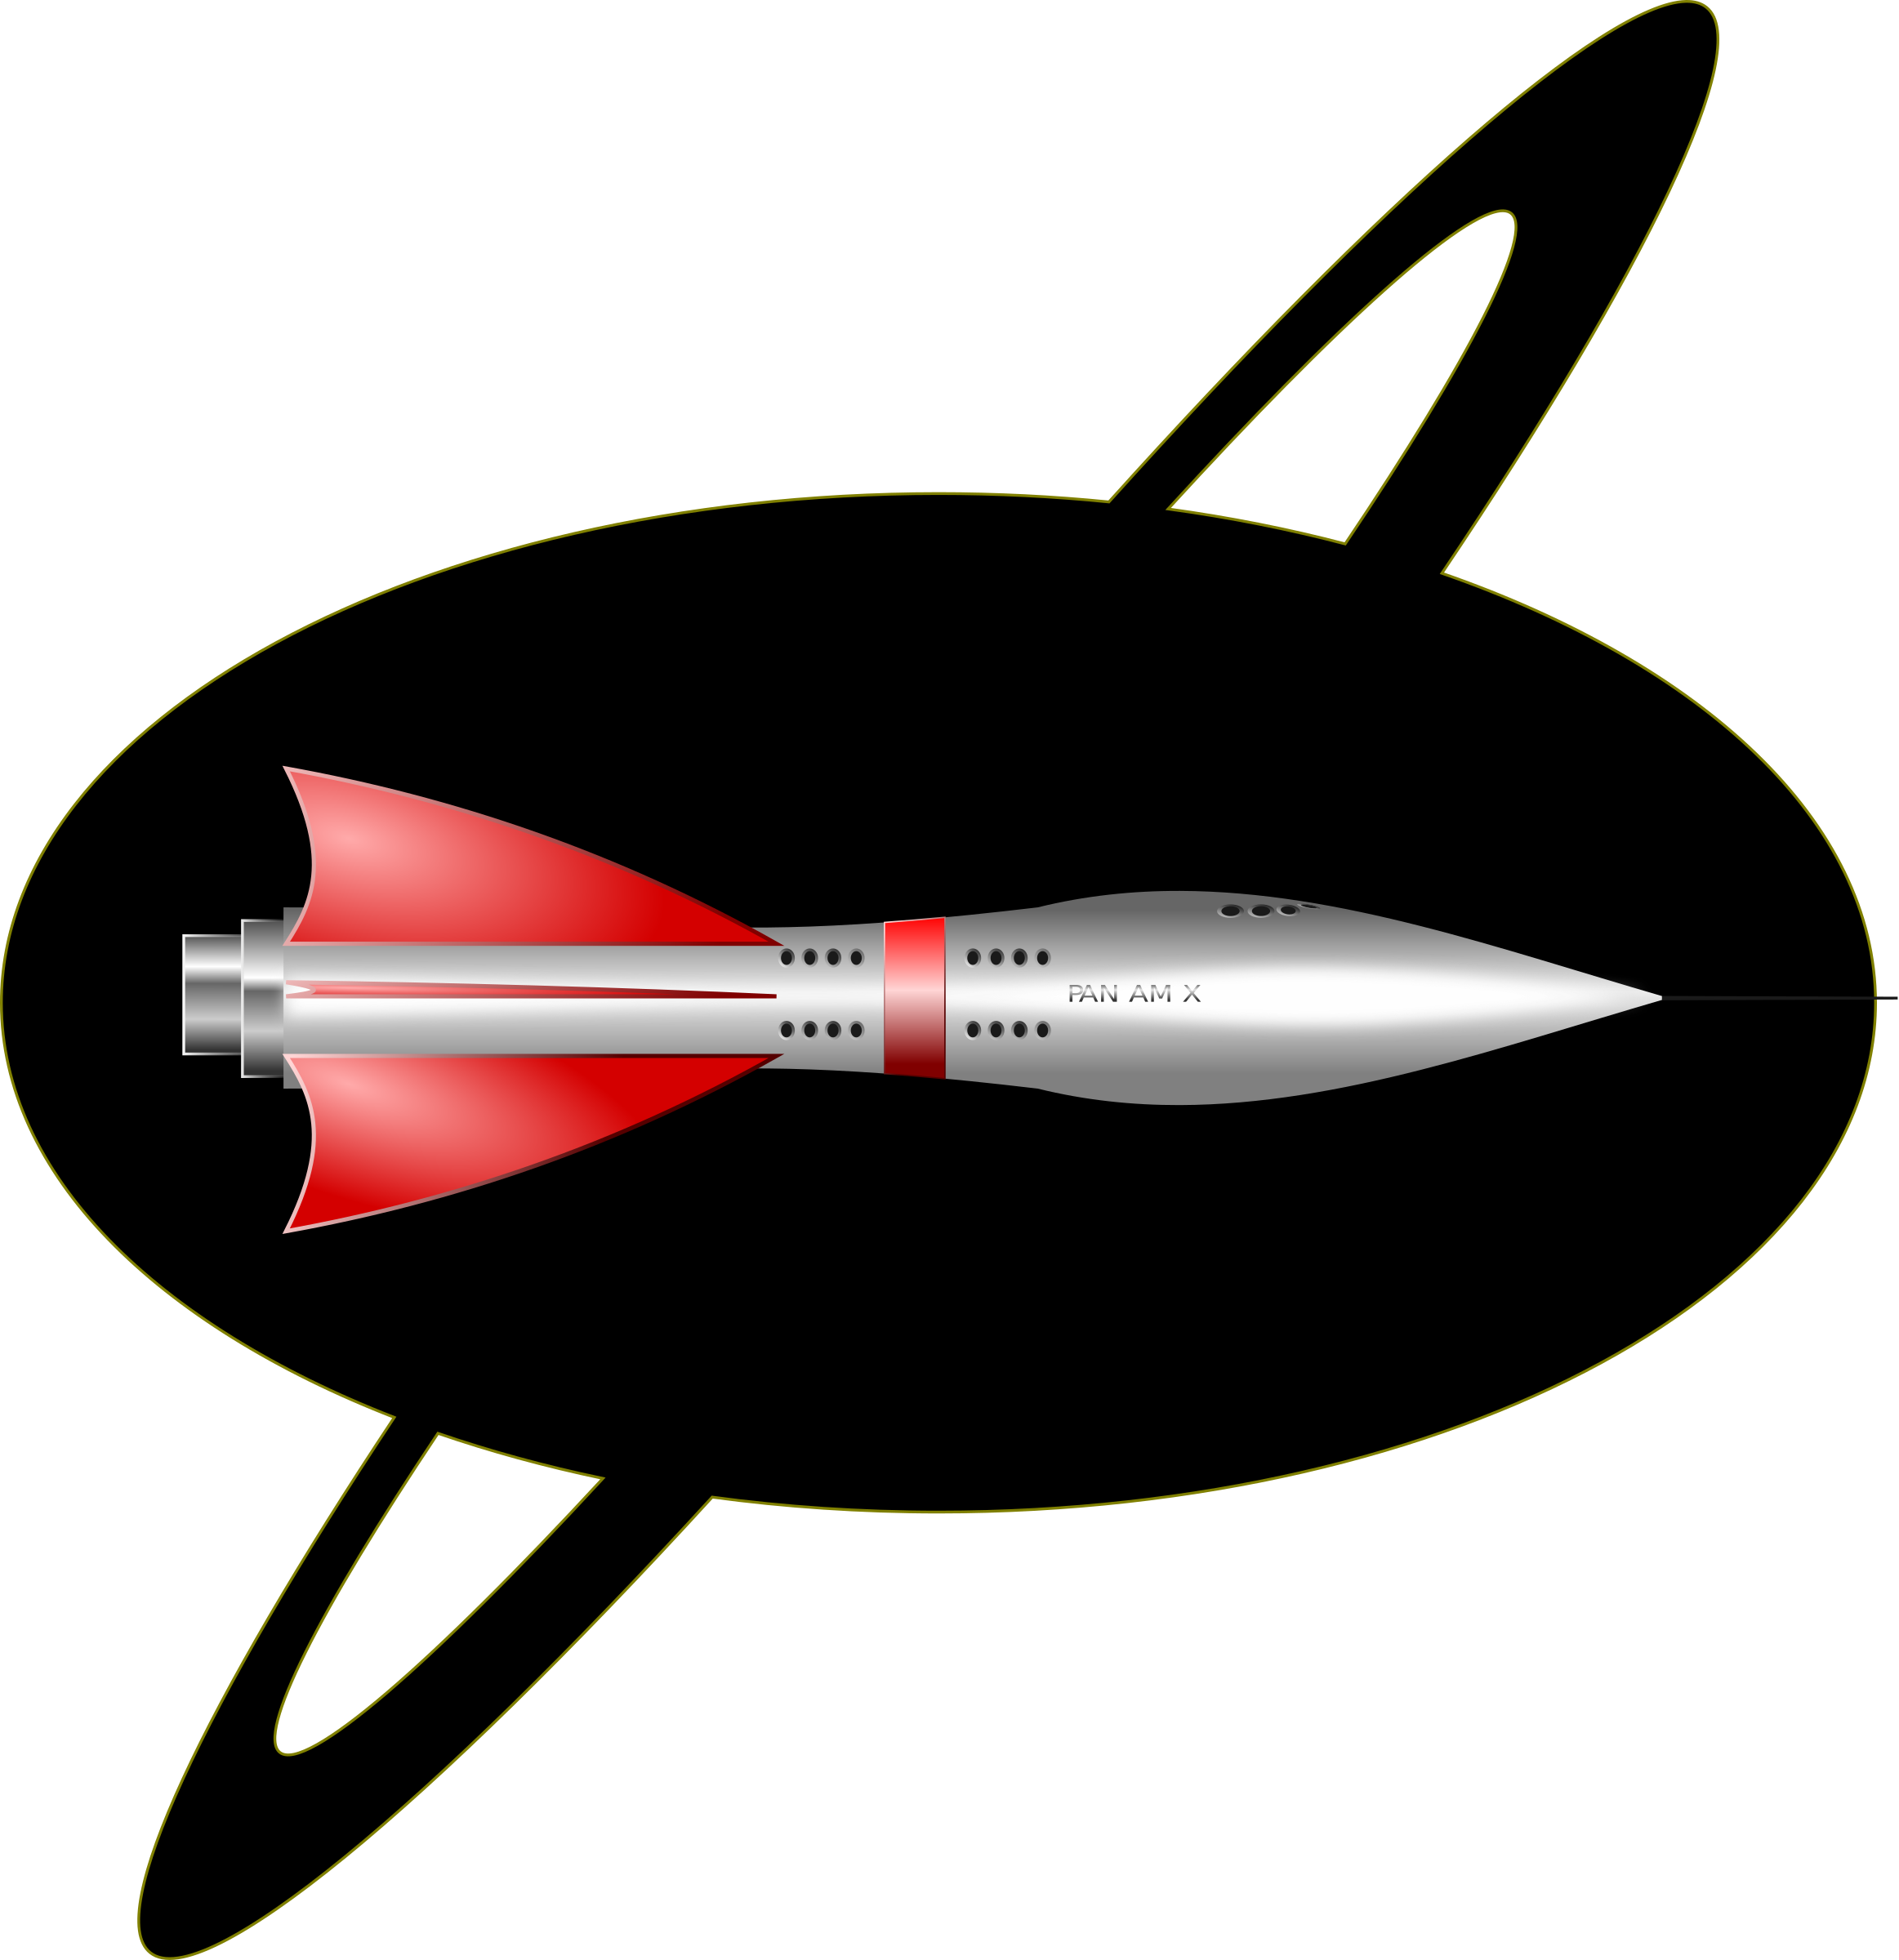 Missile clipart rocketship 1950's Clipart 1950's Rocket Ship